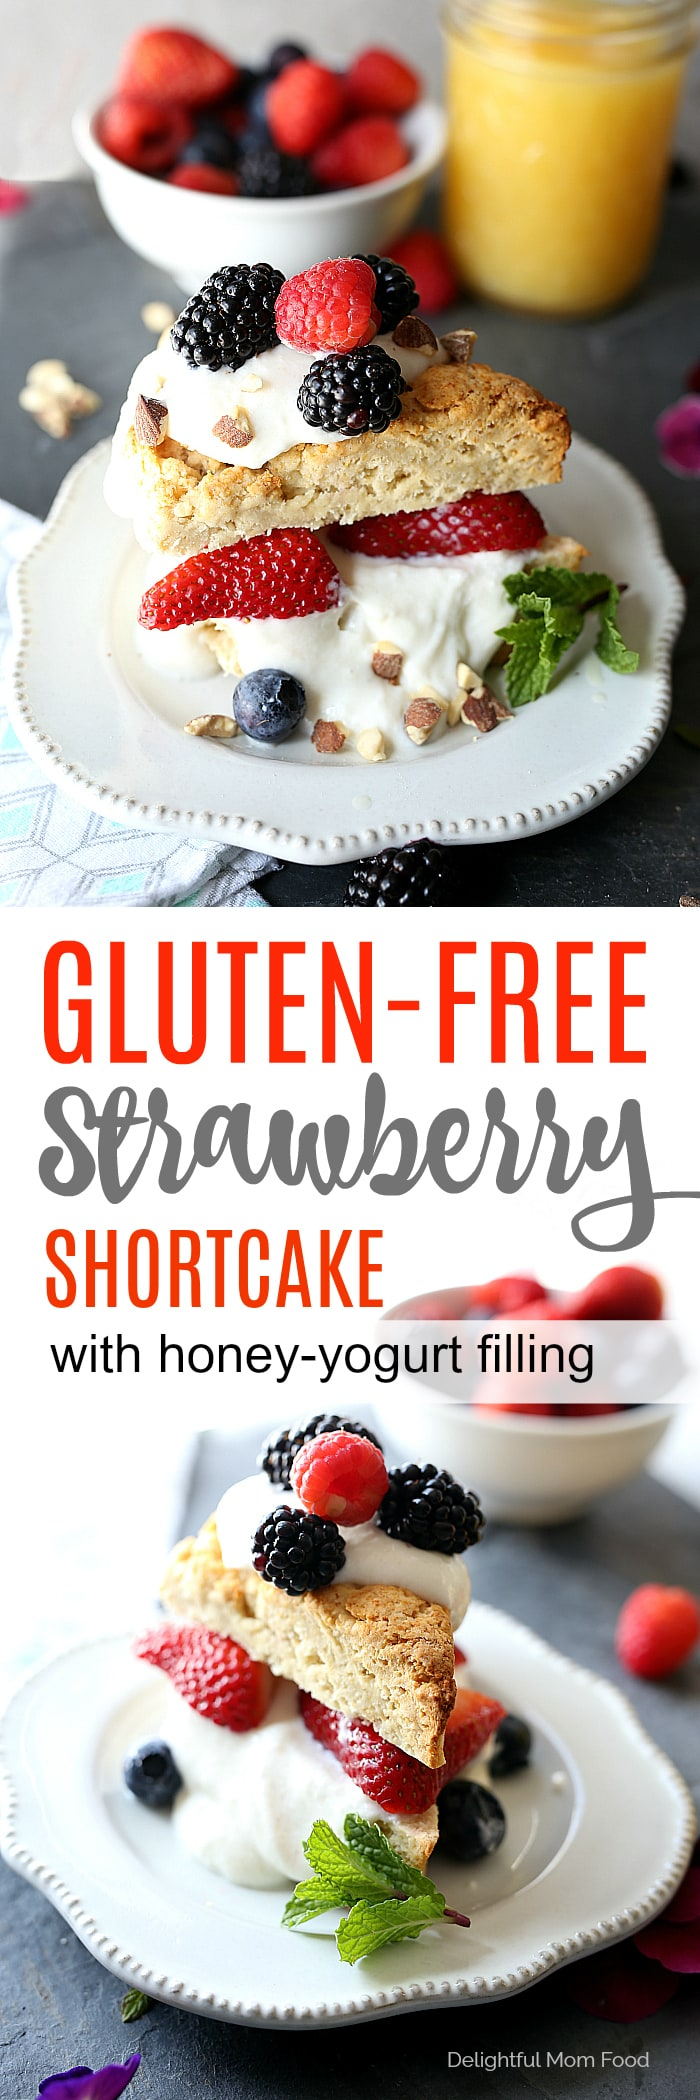 Gluten free strawberry shortcake with fresh strawberries, blueberries, blackberries and raspberries topped on a Greek yogurt honey cream filling! #strawberryshortcake #berry #recipe #glutenfree #healthy #breakfast #pastry | Delightfulmomfood.com